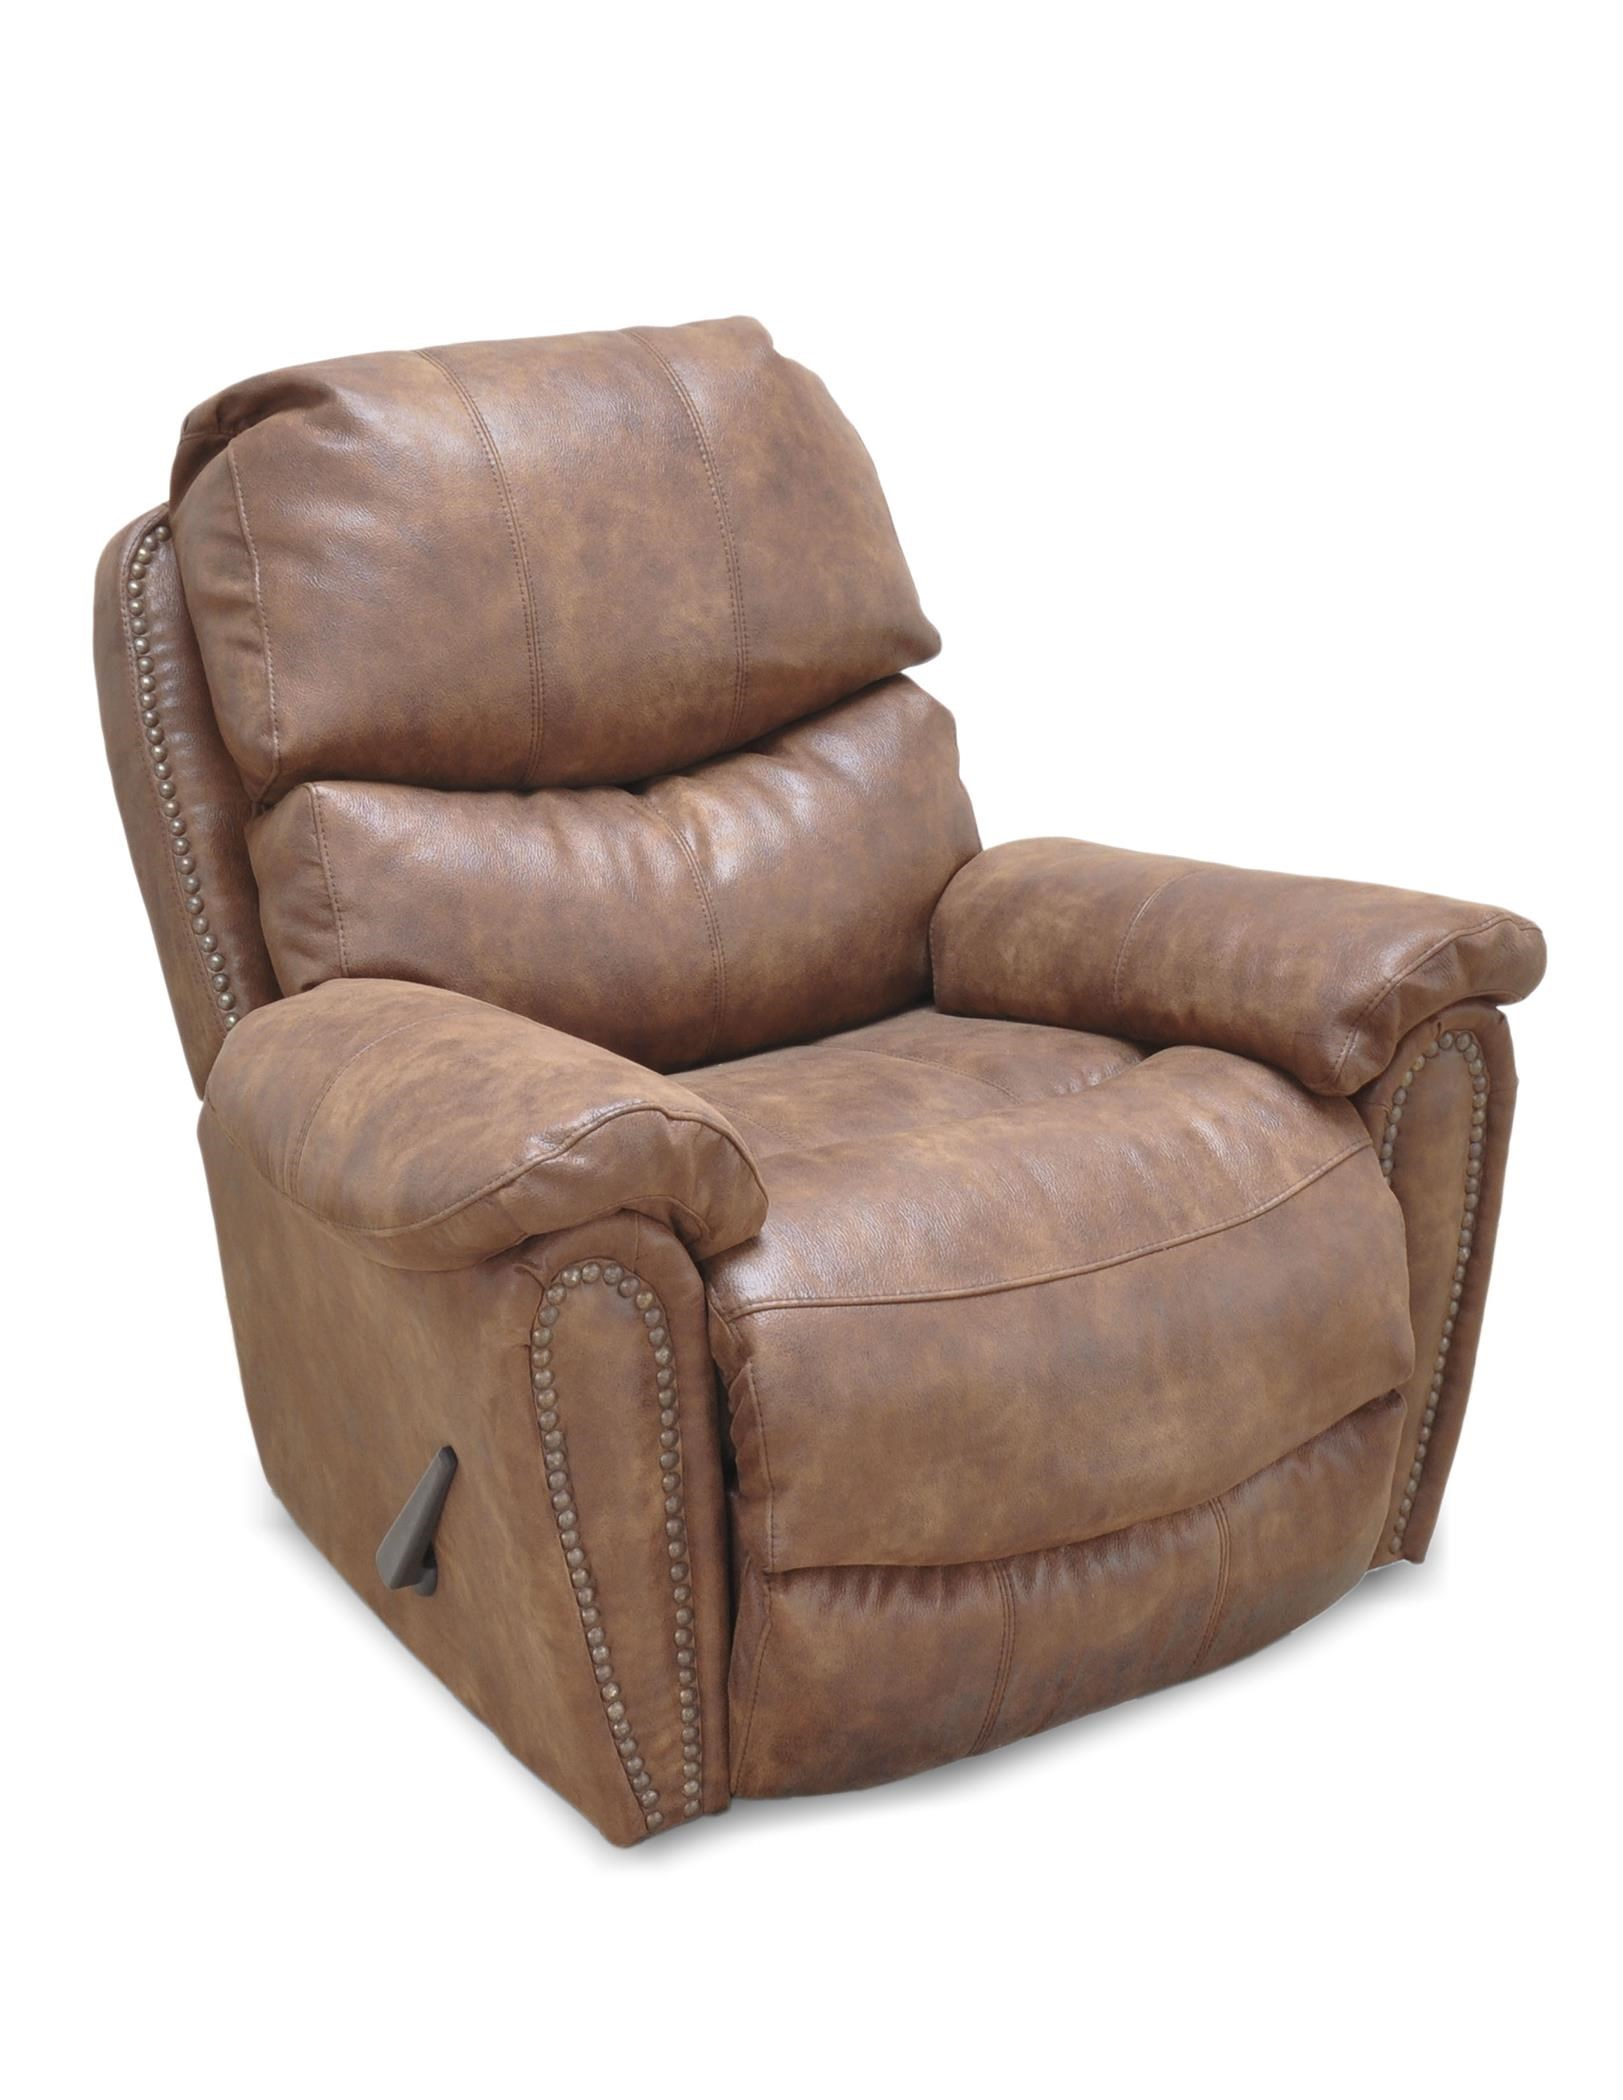 ... Richmond Recliner - Great American Home Store - Three Way Recliner